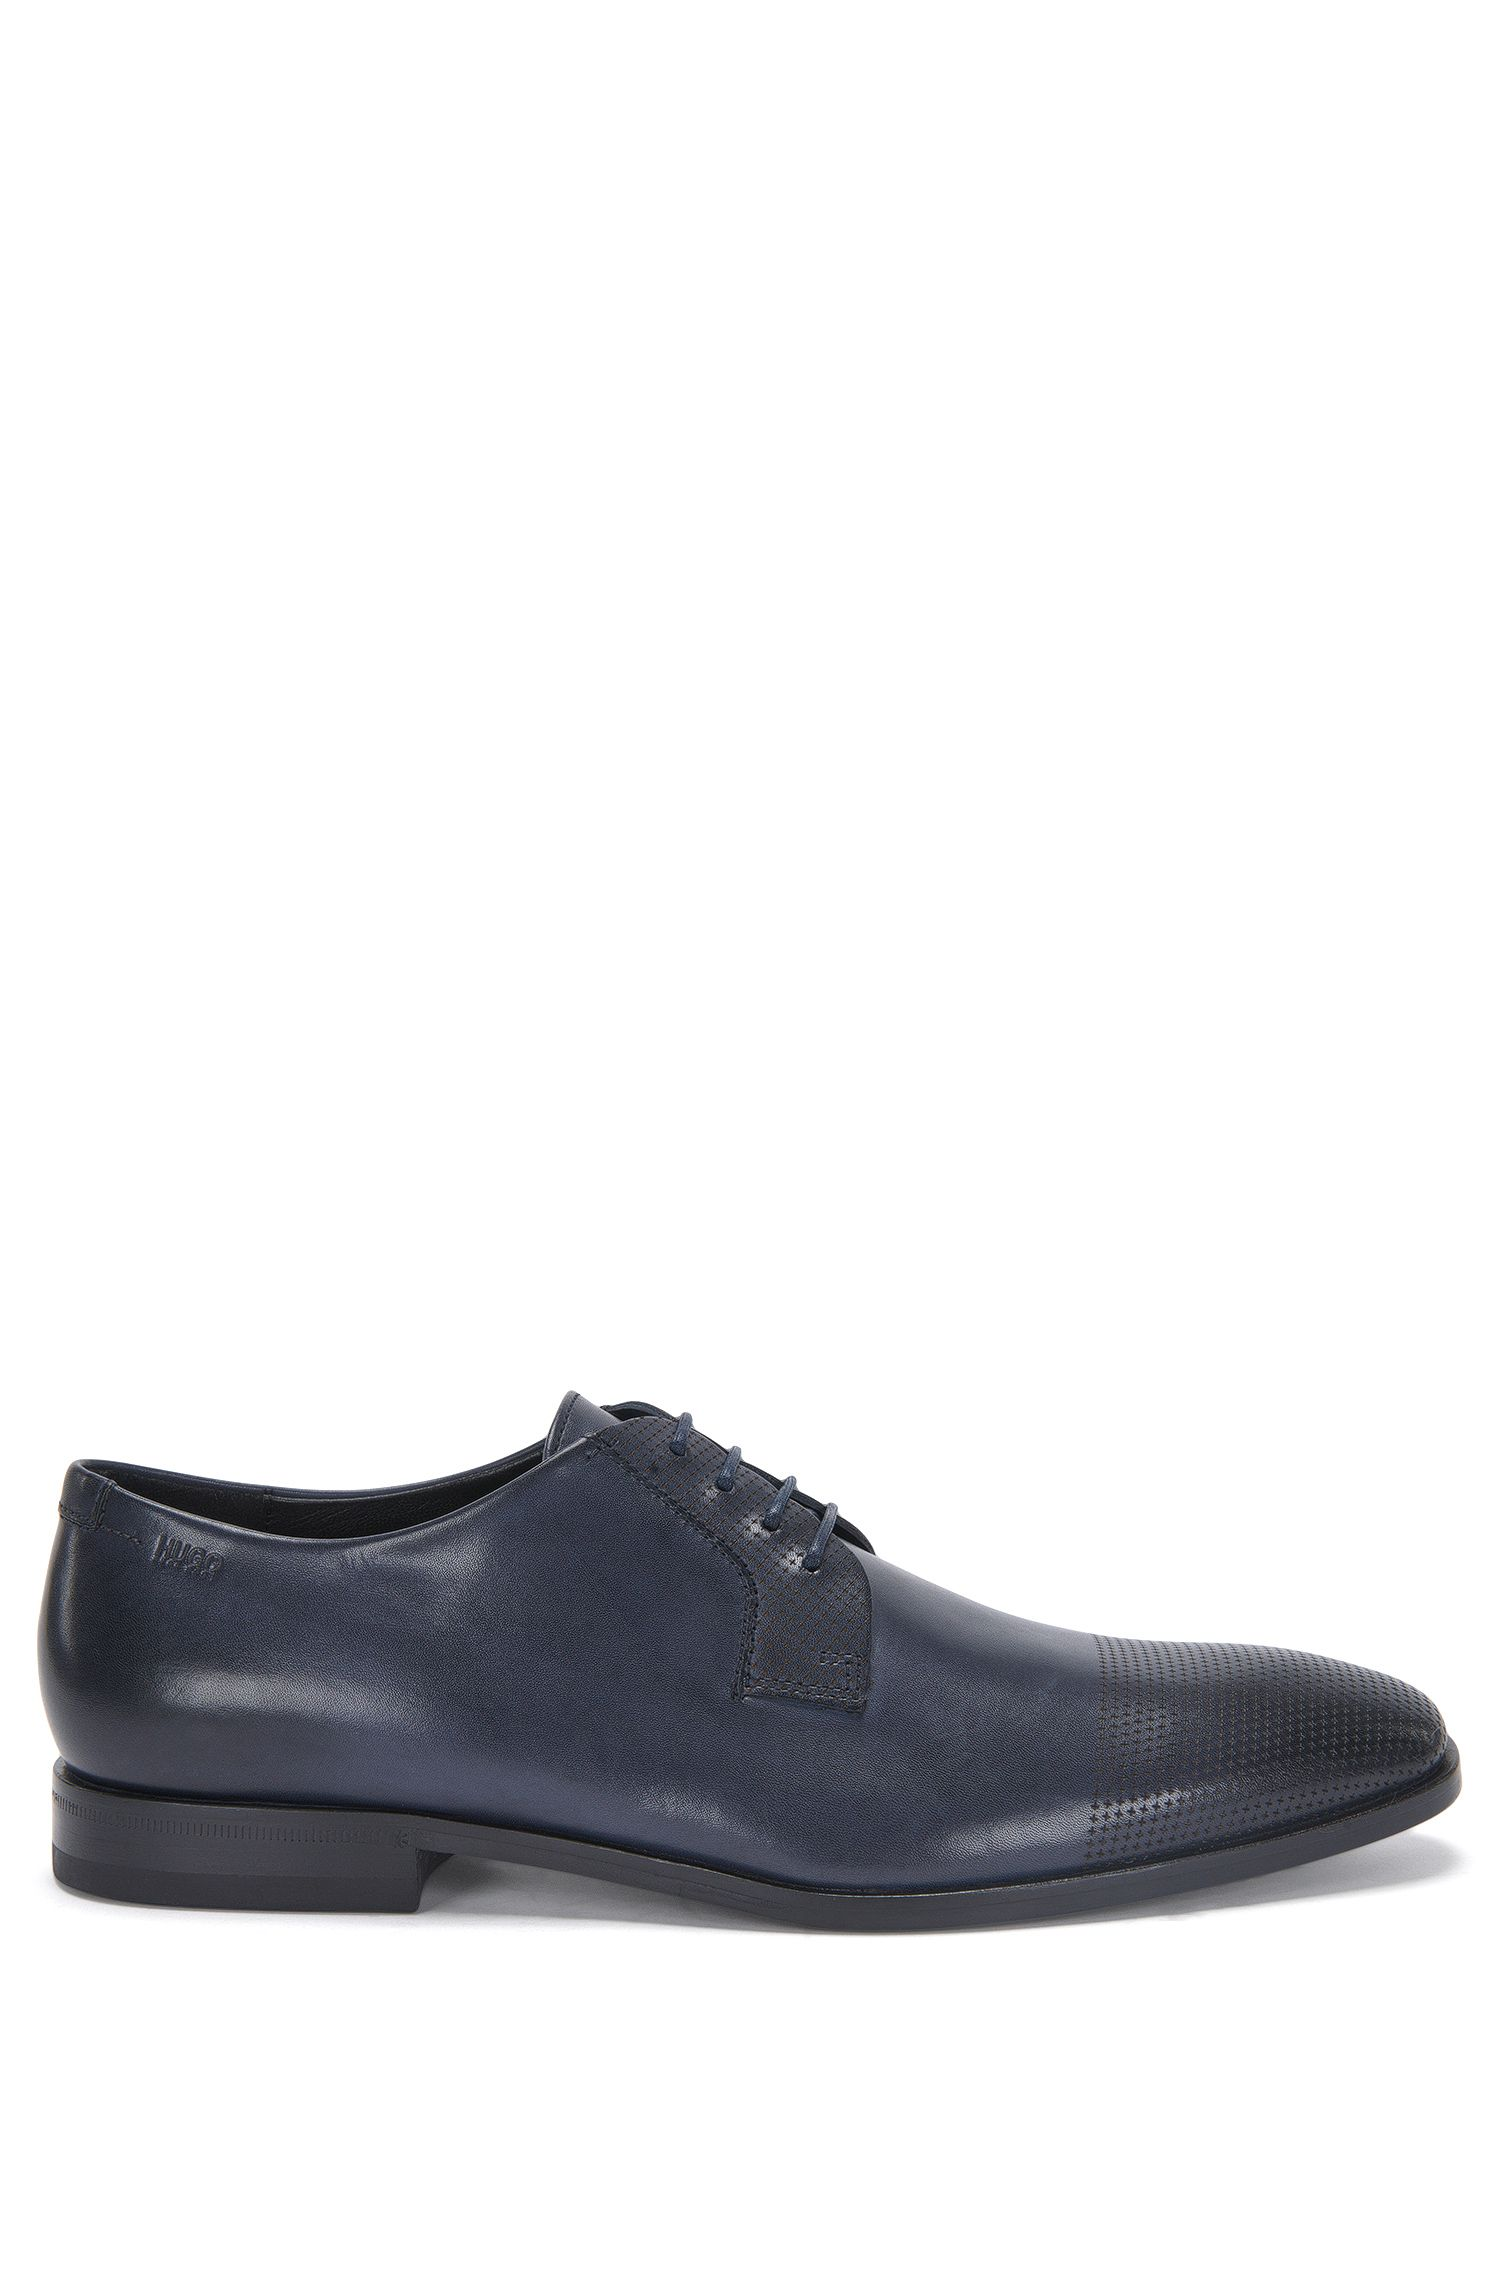 Leather lace-up shoes with lasered details: 'Square_Derb_lsps'